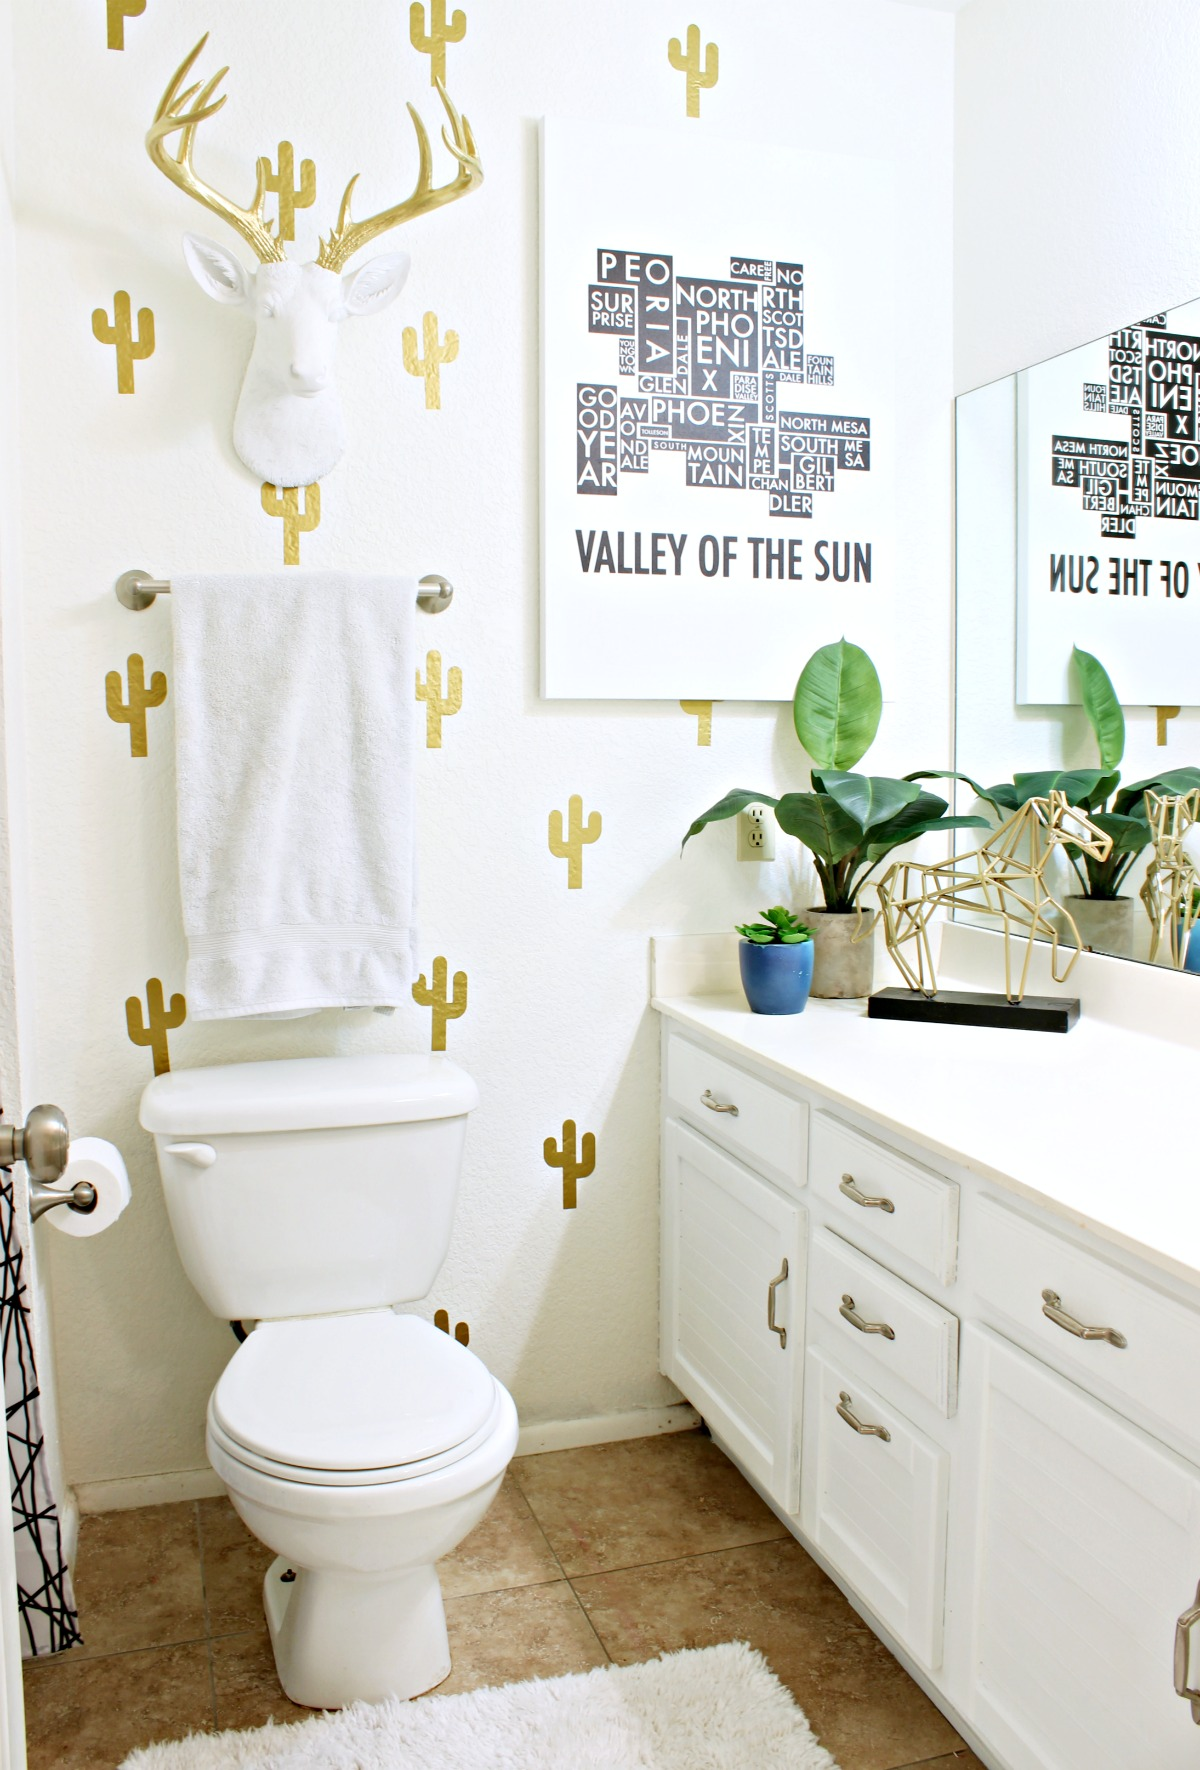 How to paint a bathroom vanity - Classy Clutter